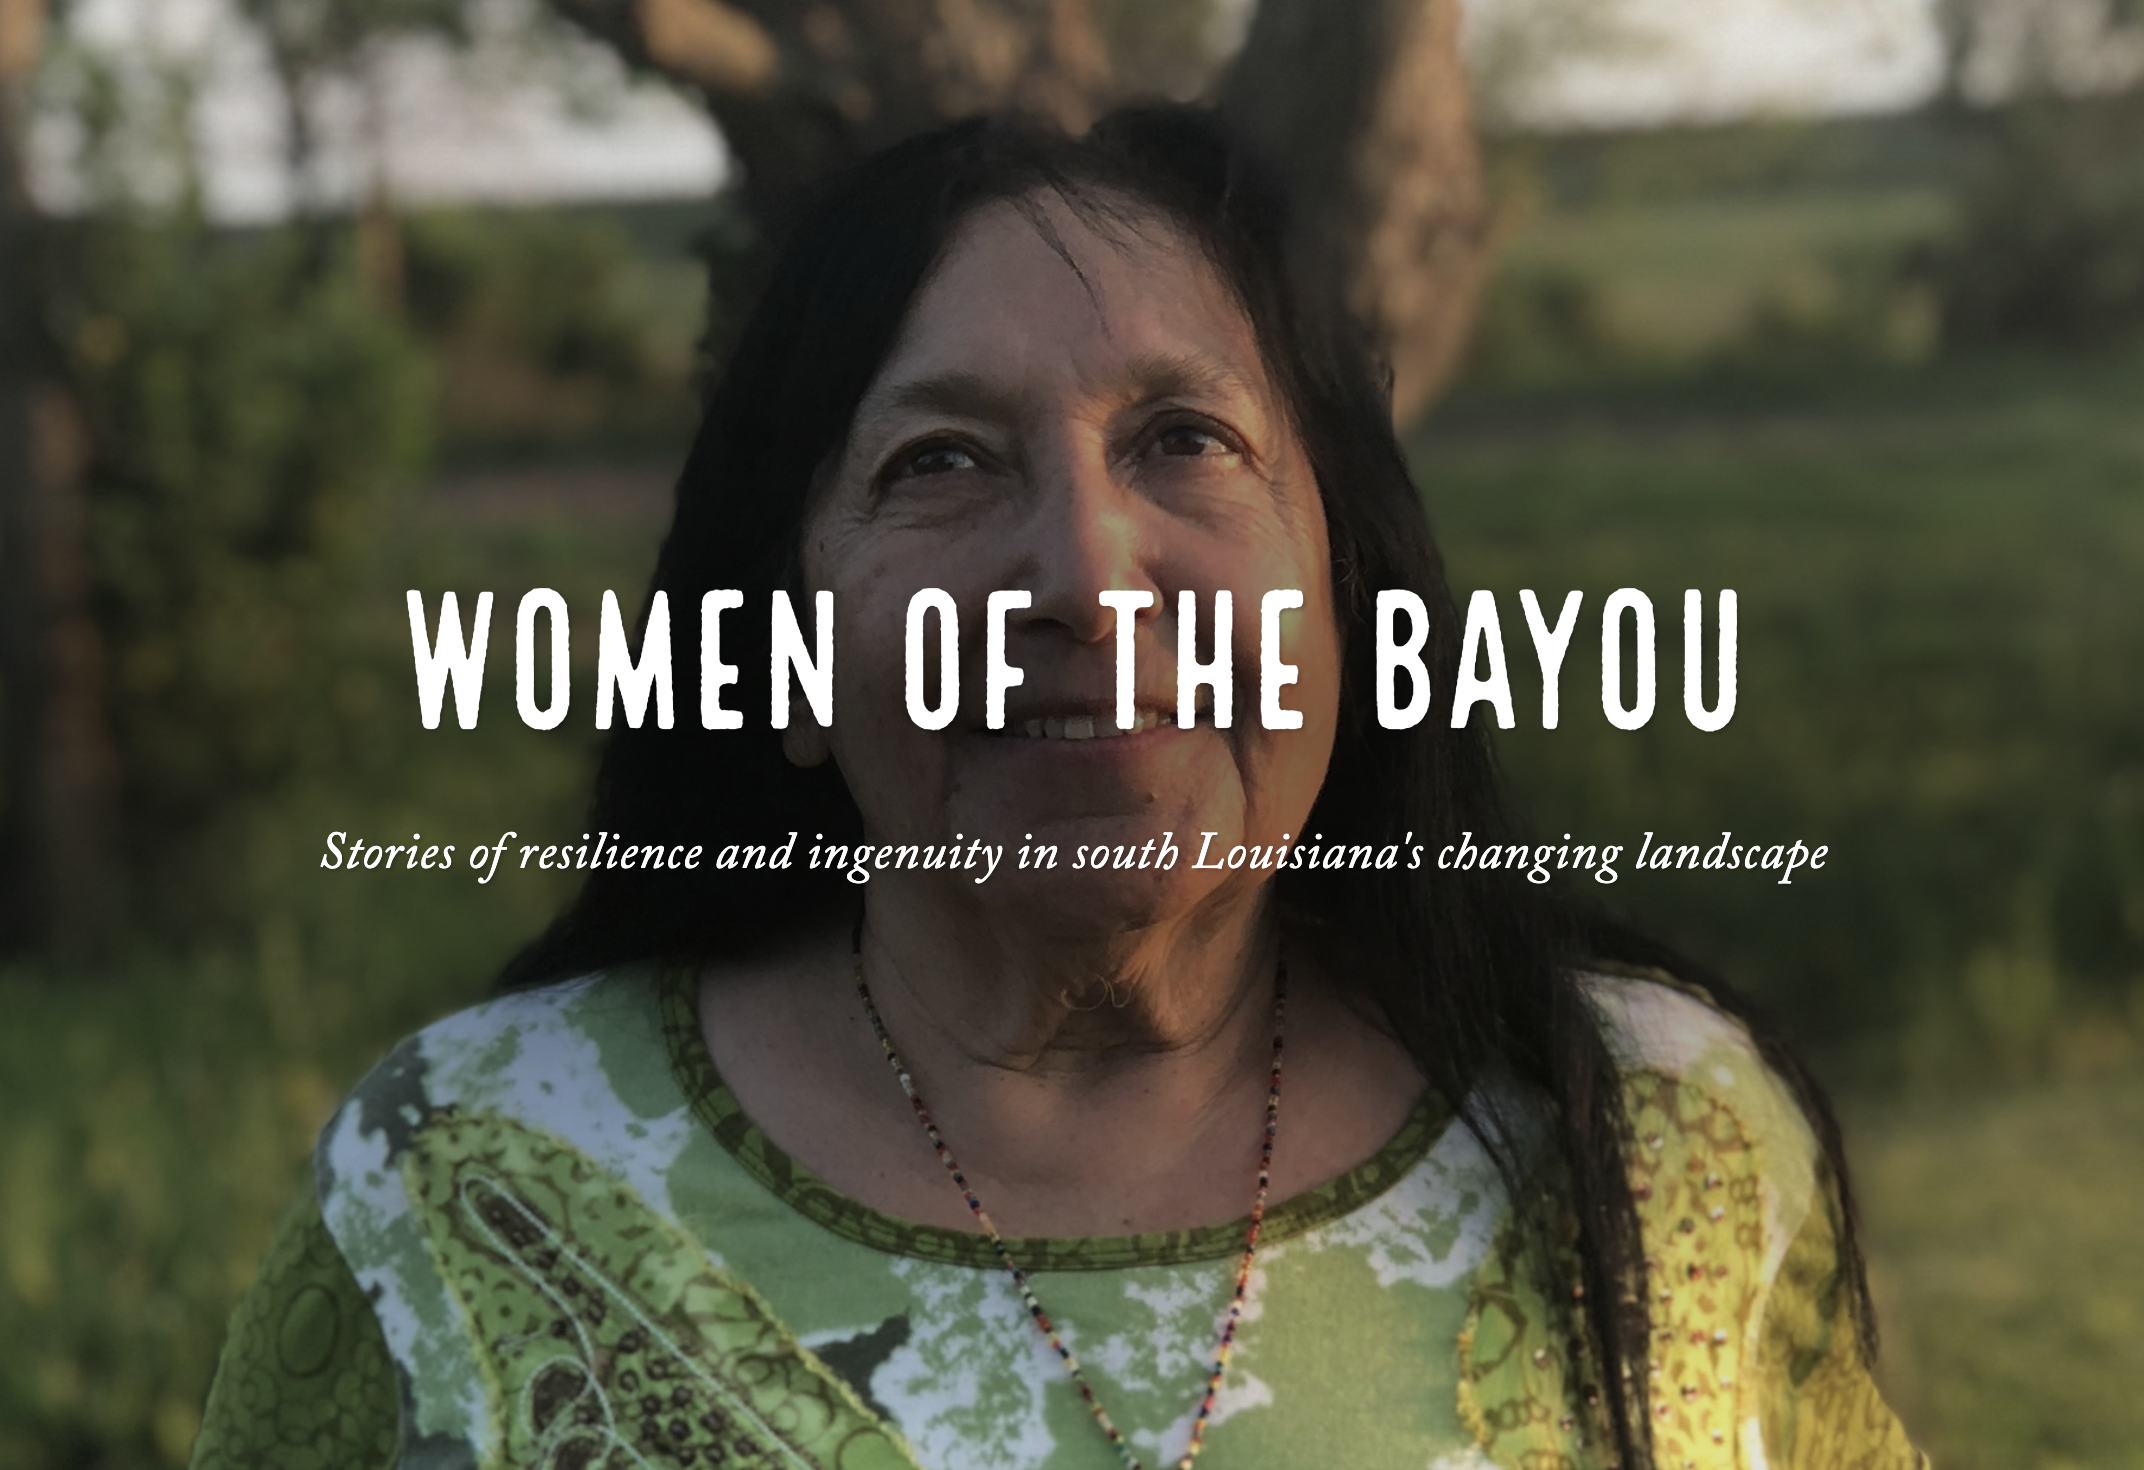 Women of the Bayou: Stories of resilience and ingenuity in south Louisiana - A multimedia storytelling project in collaboration with Louisiana Universities Marine Consortium